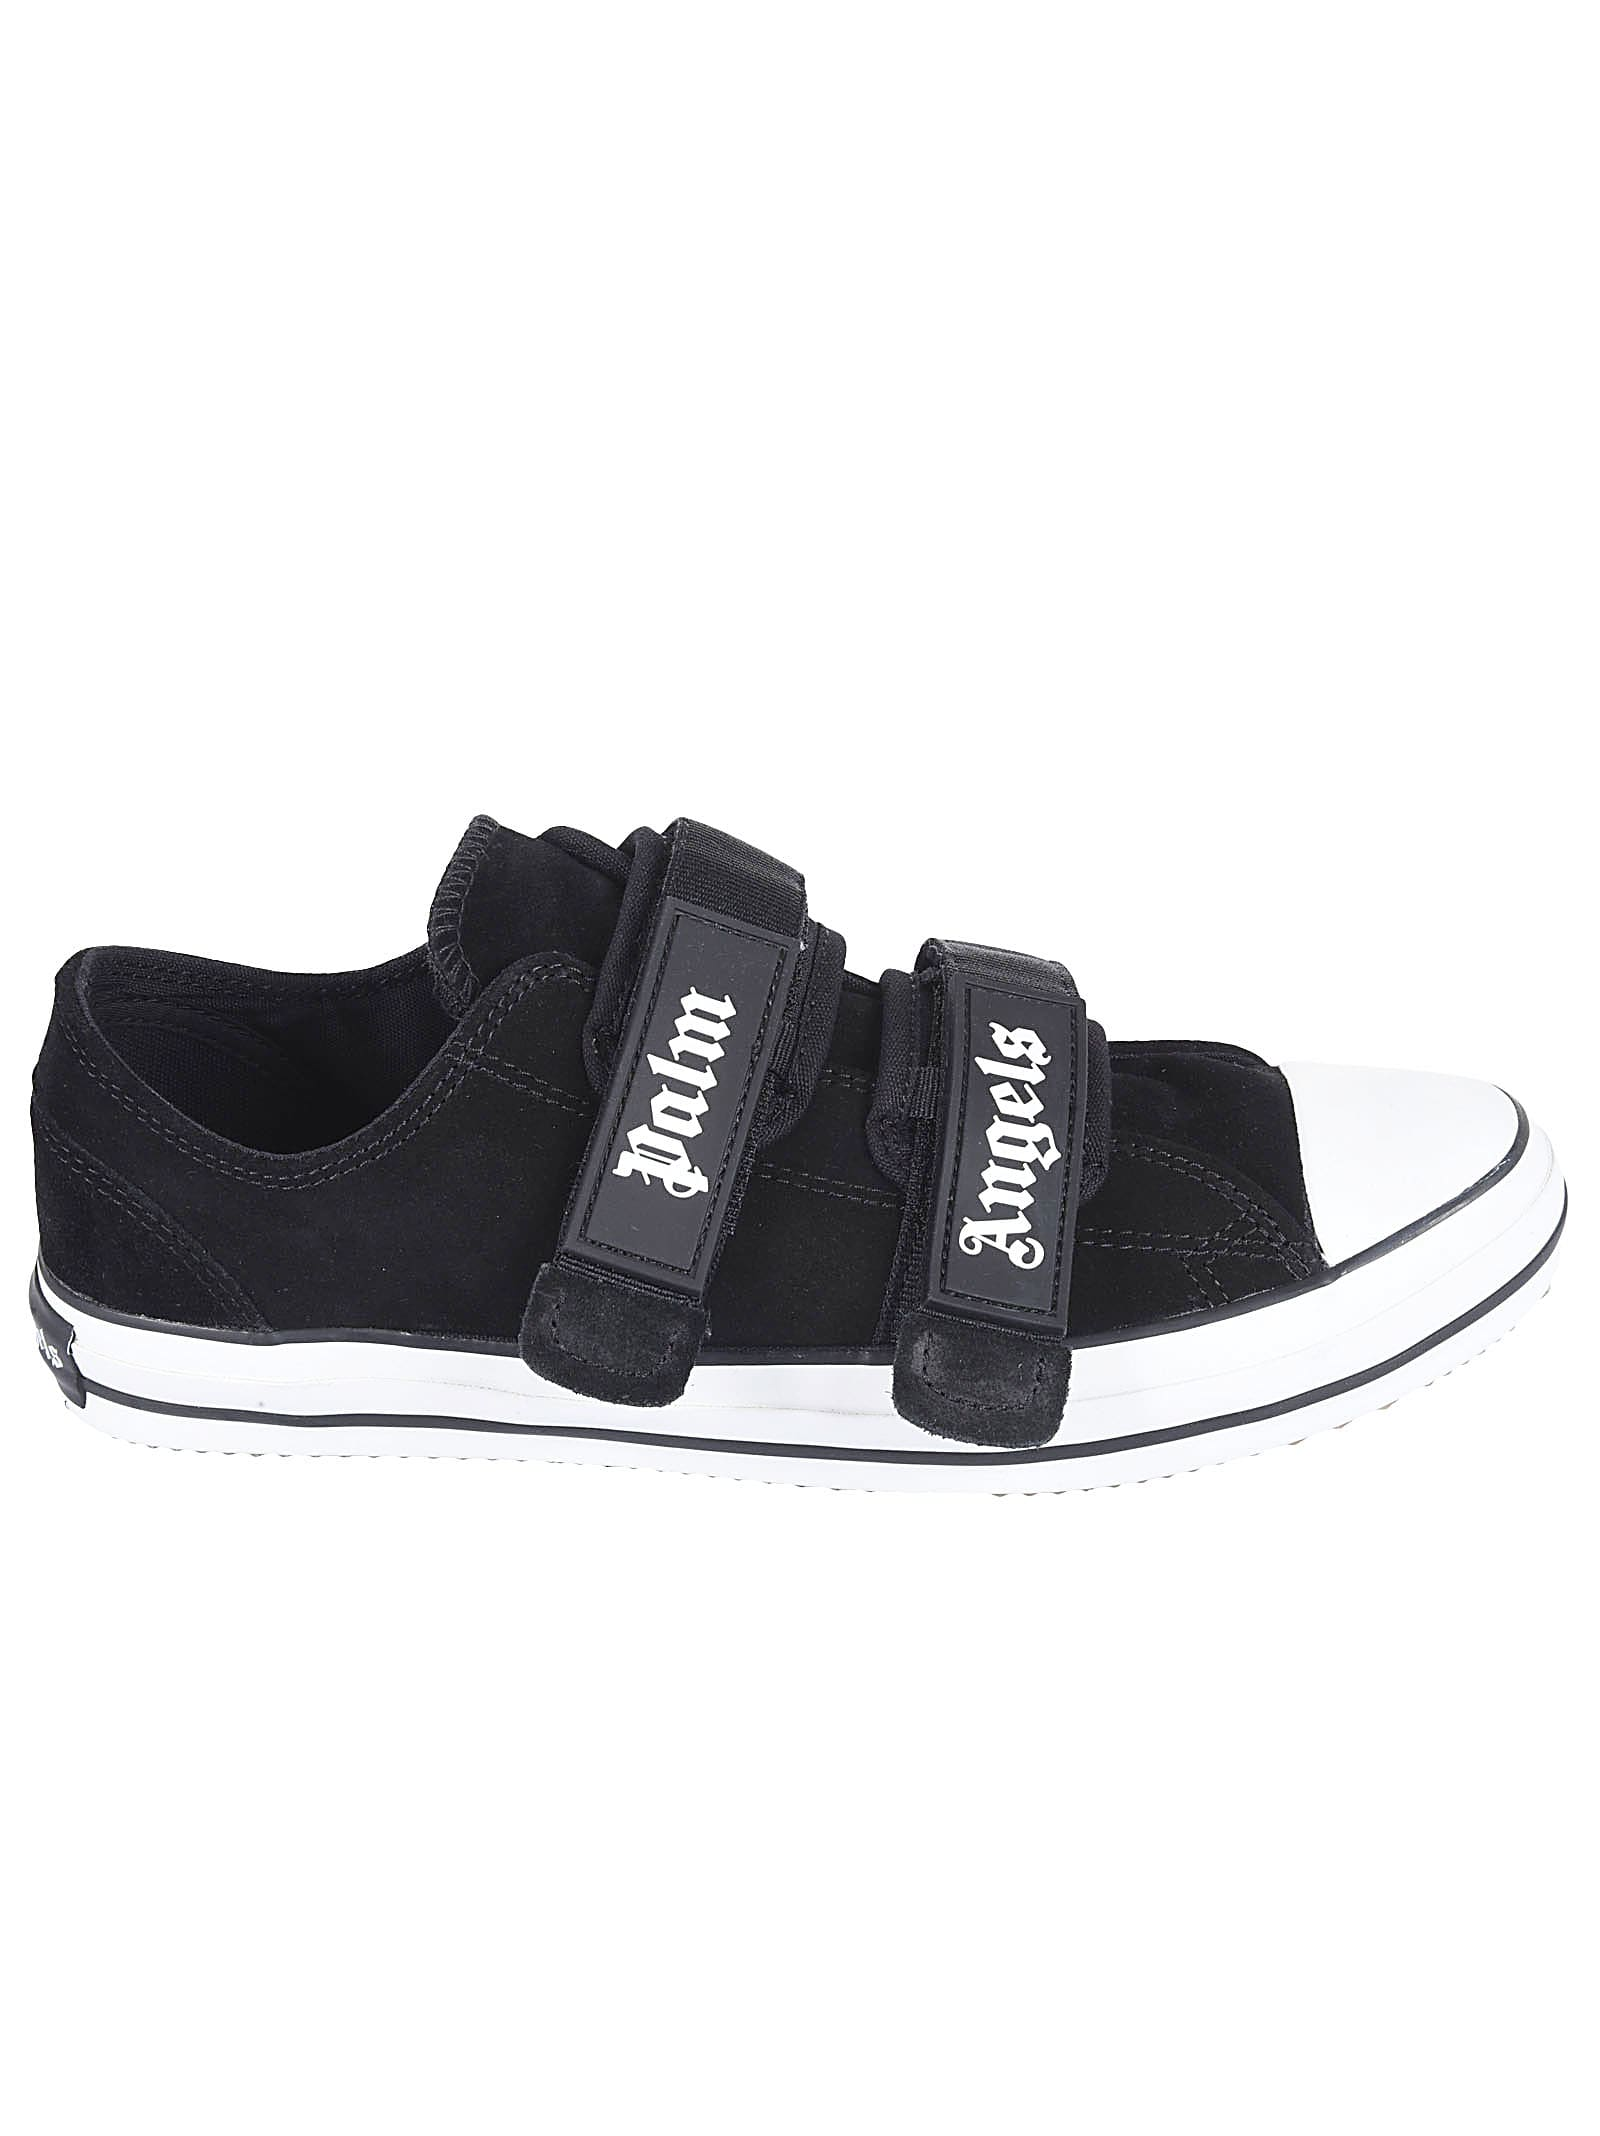 Palm Angels Velcro Vulcanized Sneakers